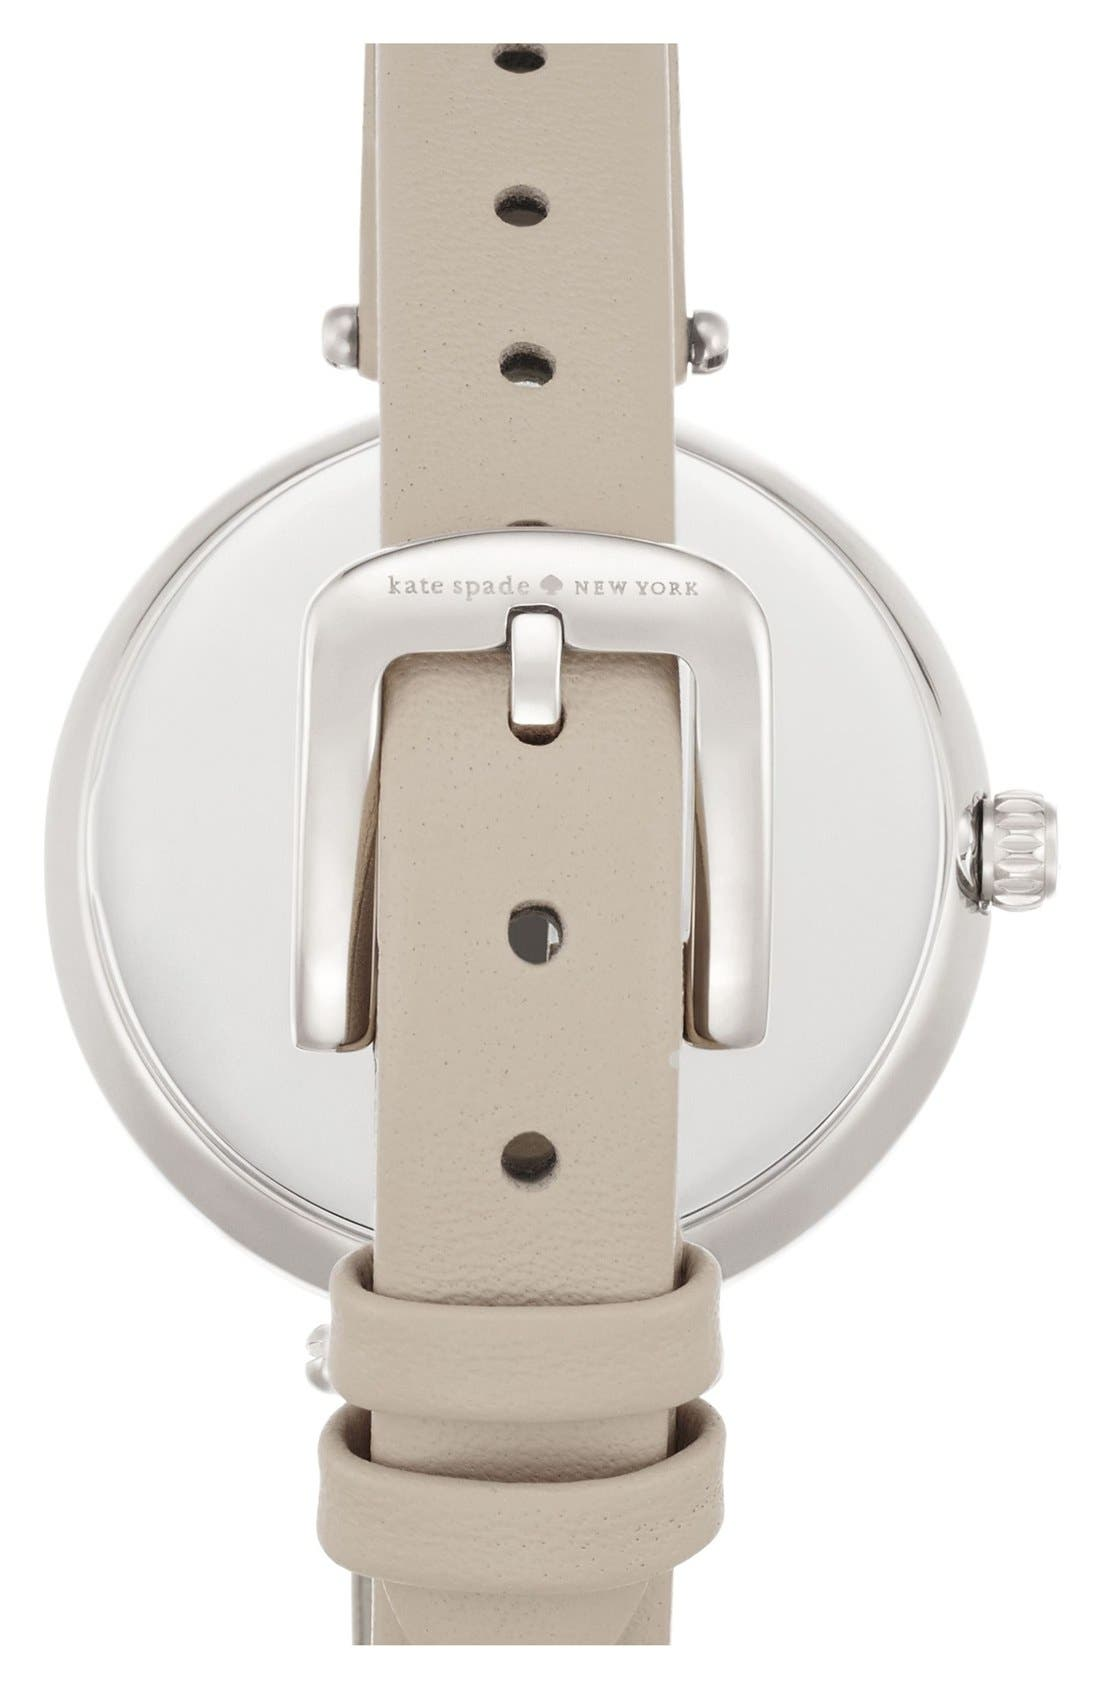 KATE SPADE NEW YORK, 'holland' round watch, 34mm, Alternate thumbnail 3, color, CLOCKTOWER GREY/ SILVER